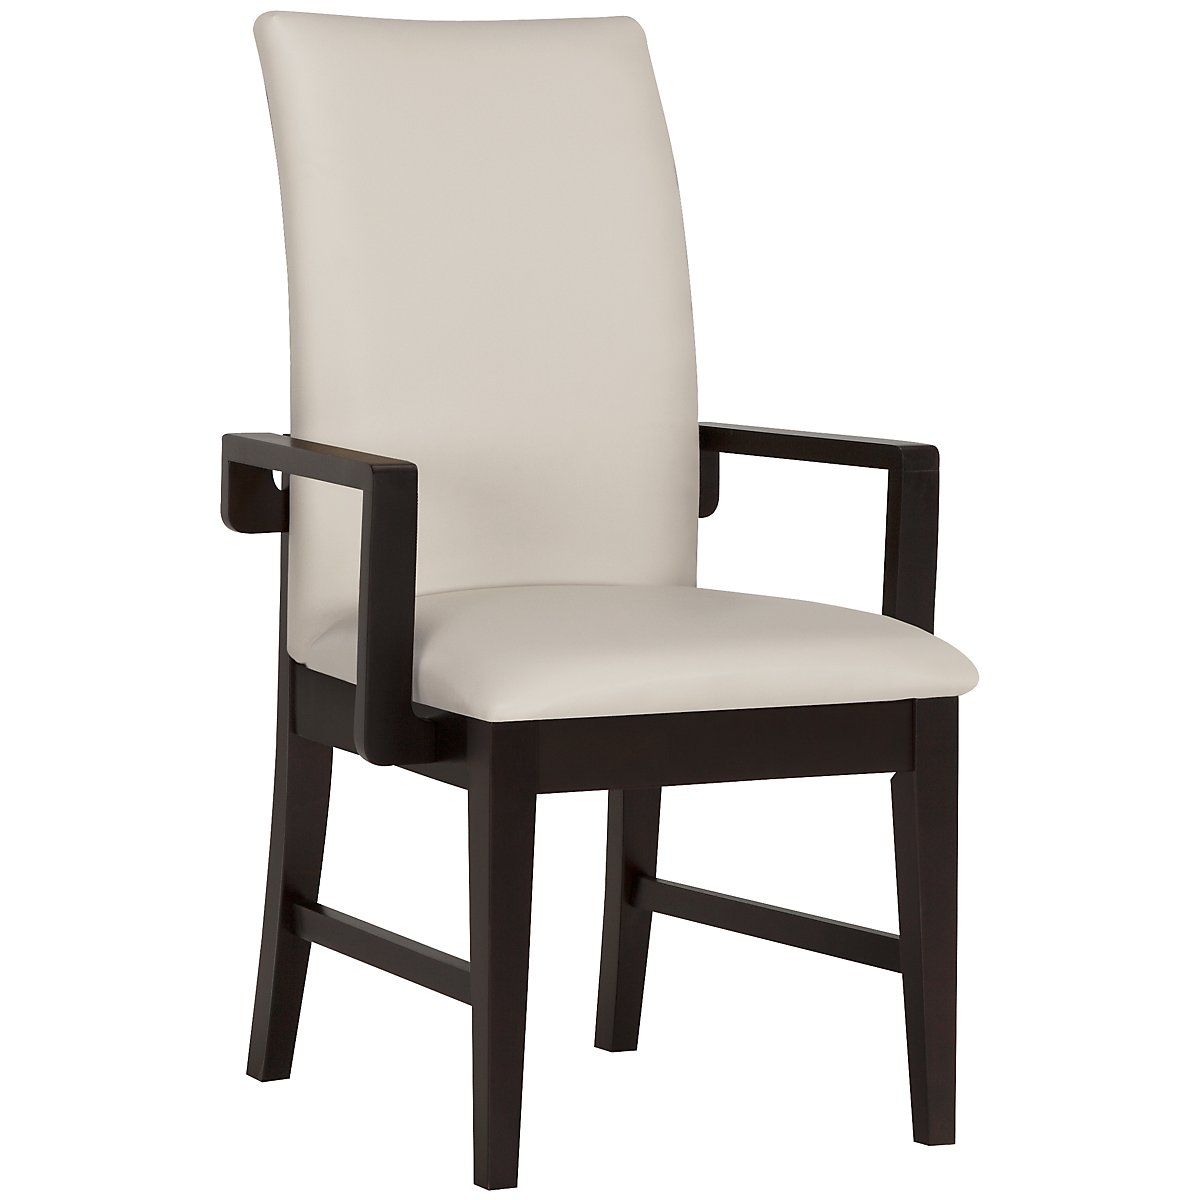 Encore2 Dark Tone Bonded Leather Upholstered Arm Chair